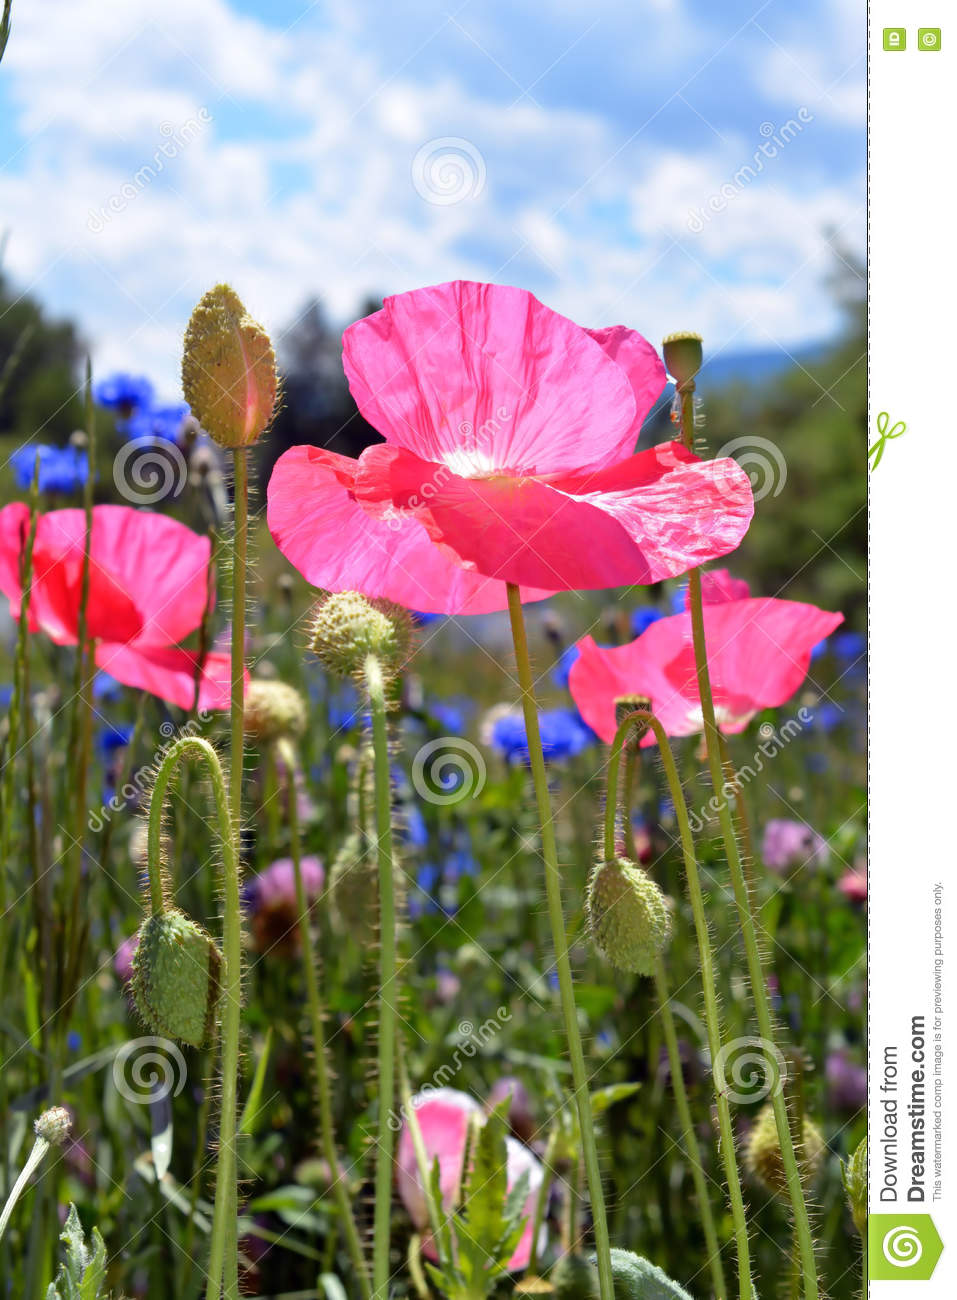 Pink Poppies In Flower Field Stock Image Image Of Bright Outside